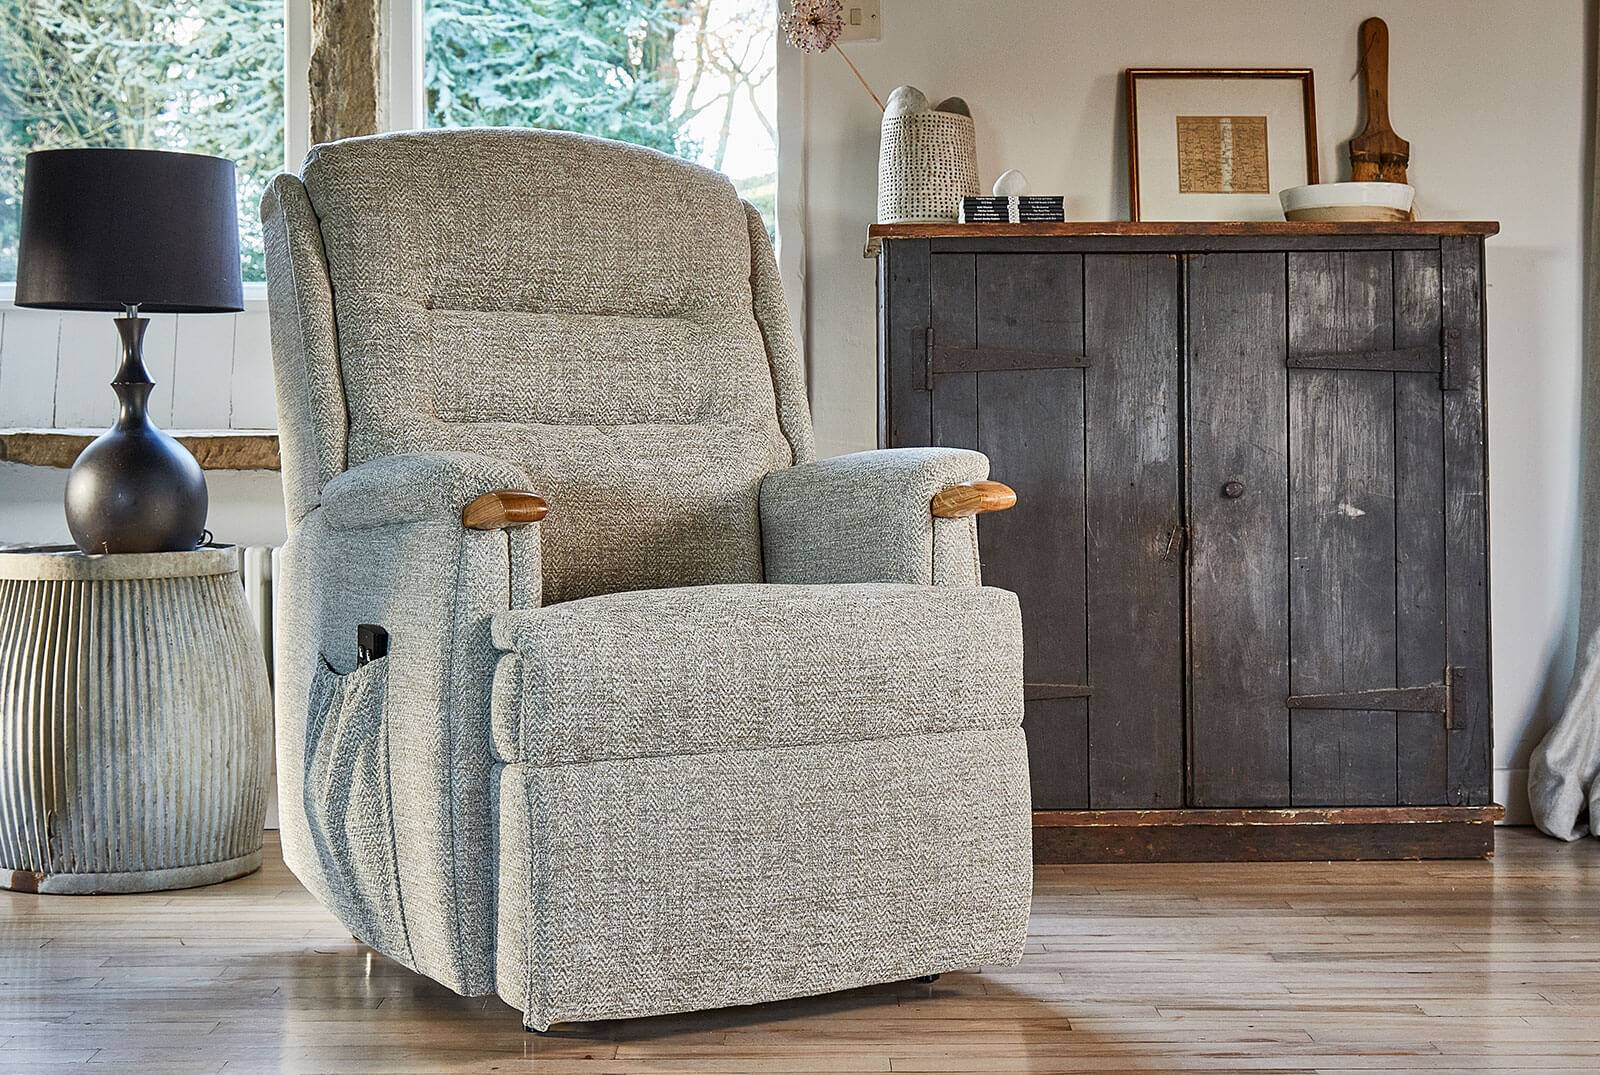 Ripley Dual Motor Riser Recliner with Knuckles in Canilo Oatmeal